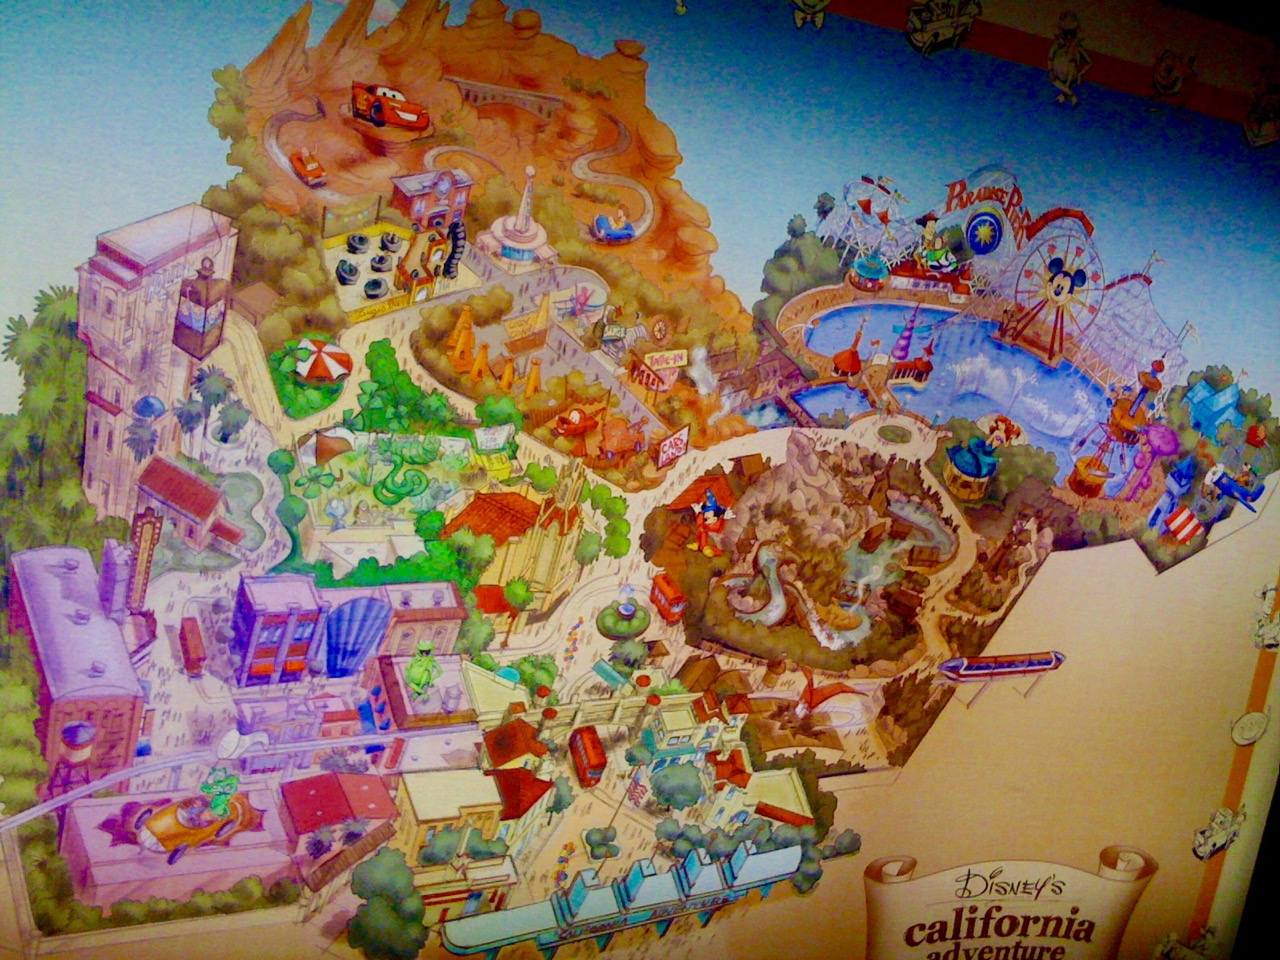 This park map outlines the Disney California Adventure of today.